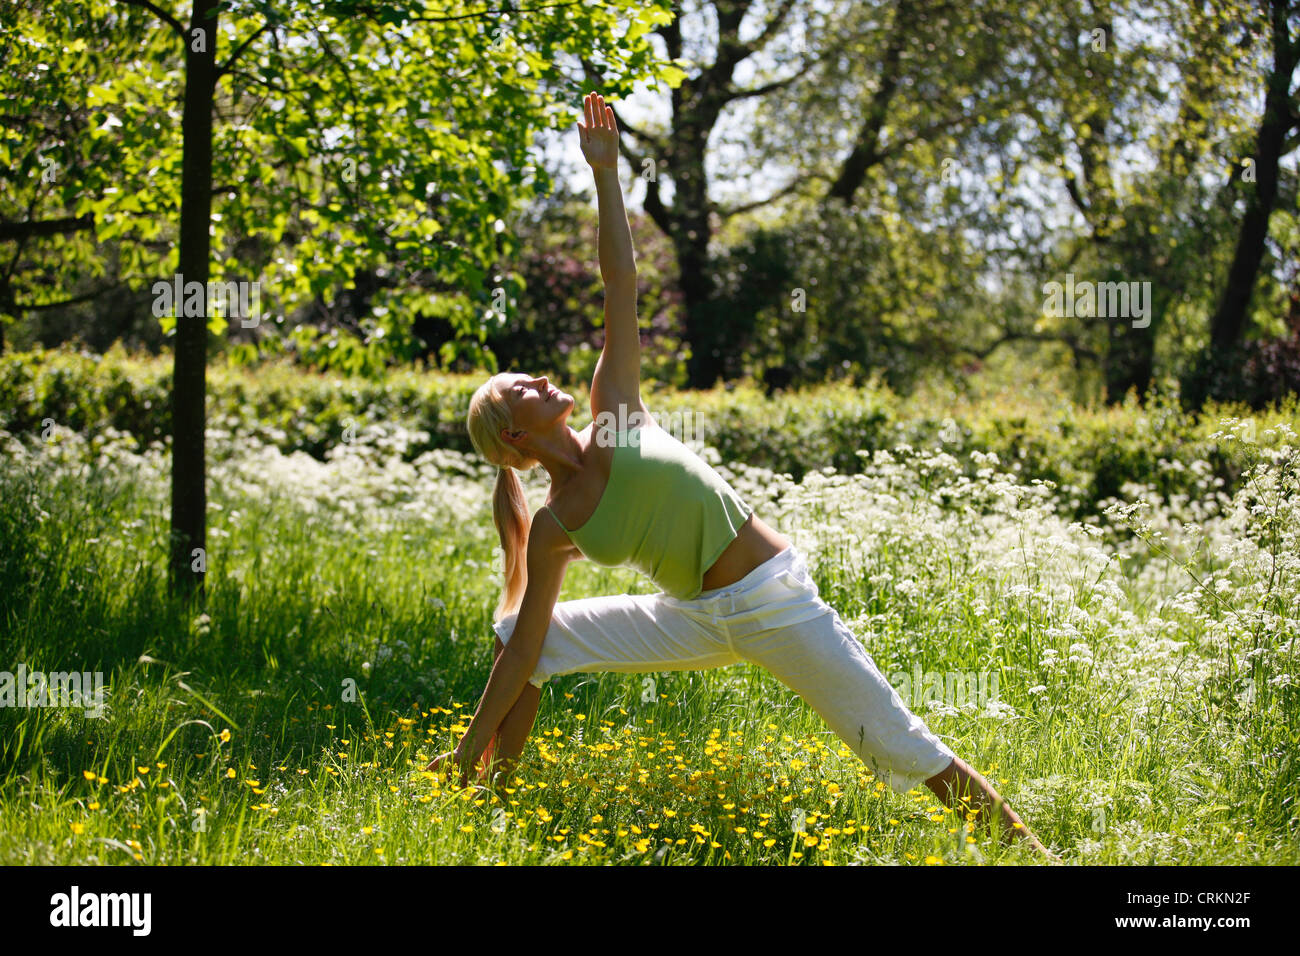 A young woman practicing yoga outside, triangle pose - Stock Image